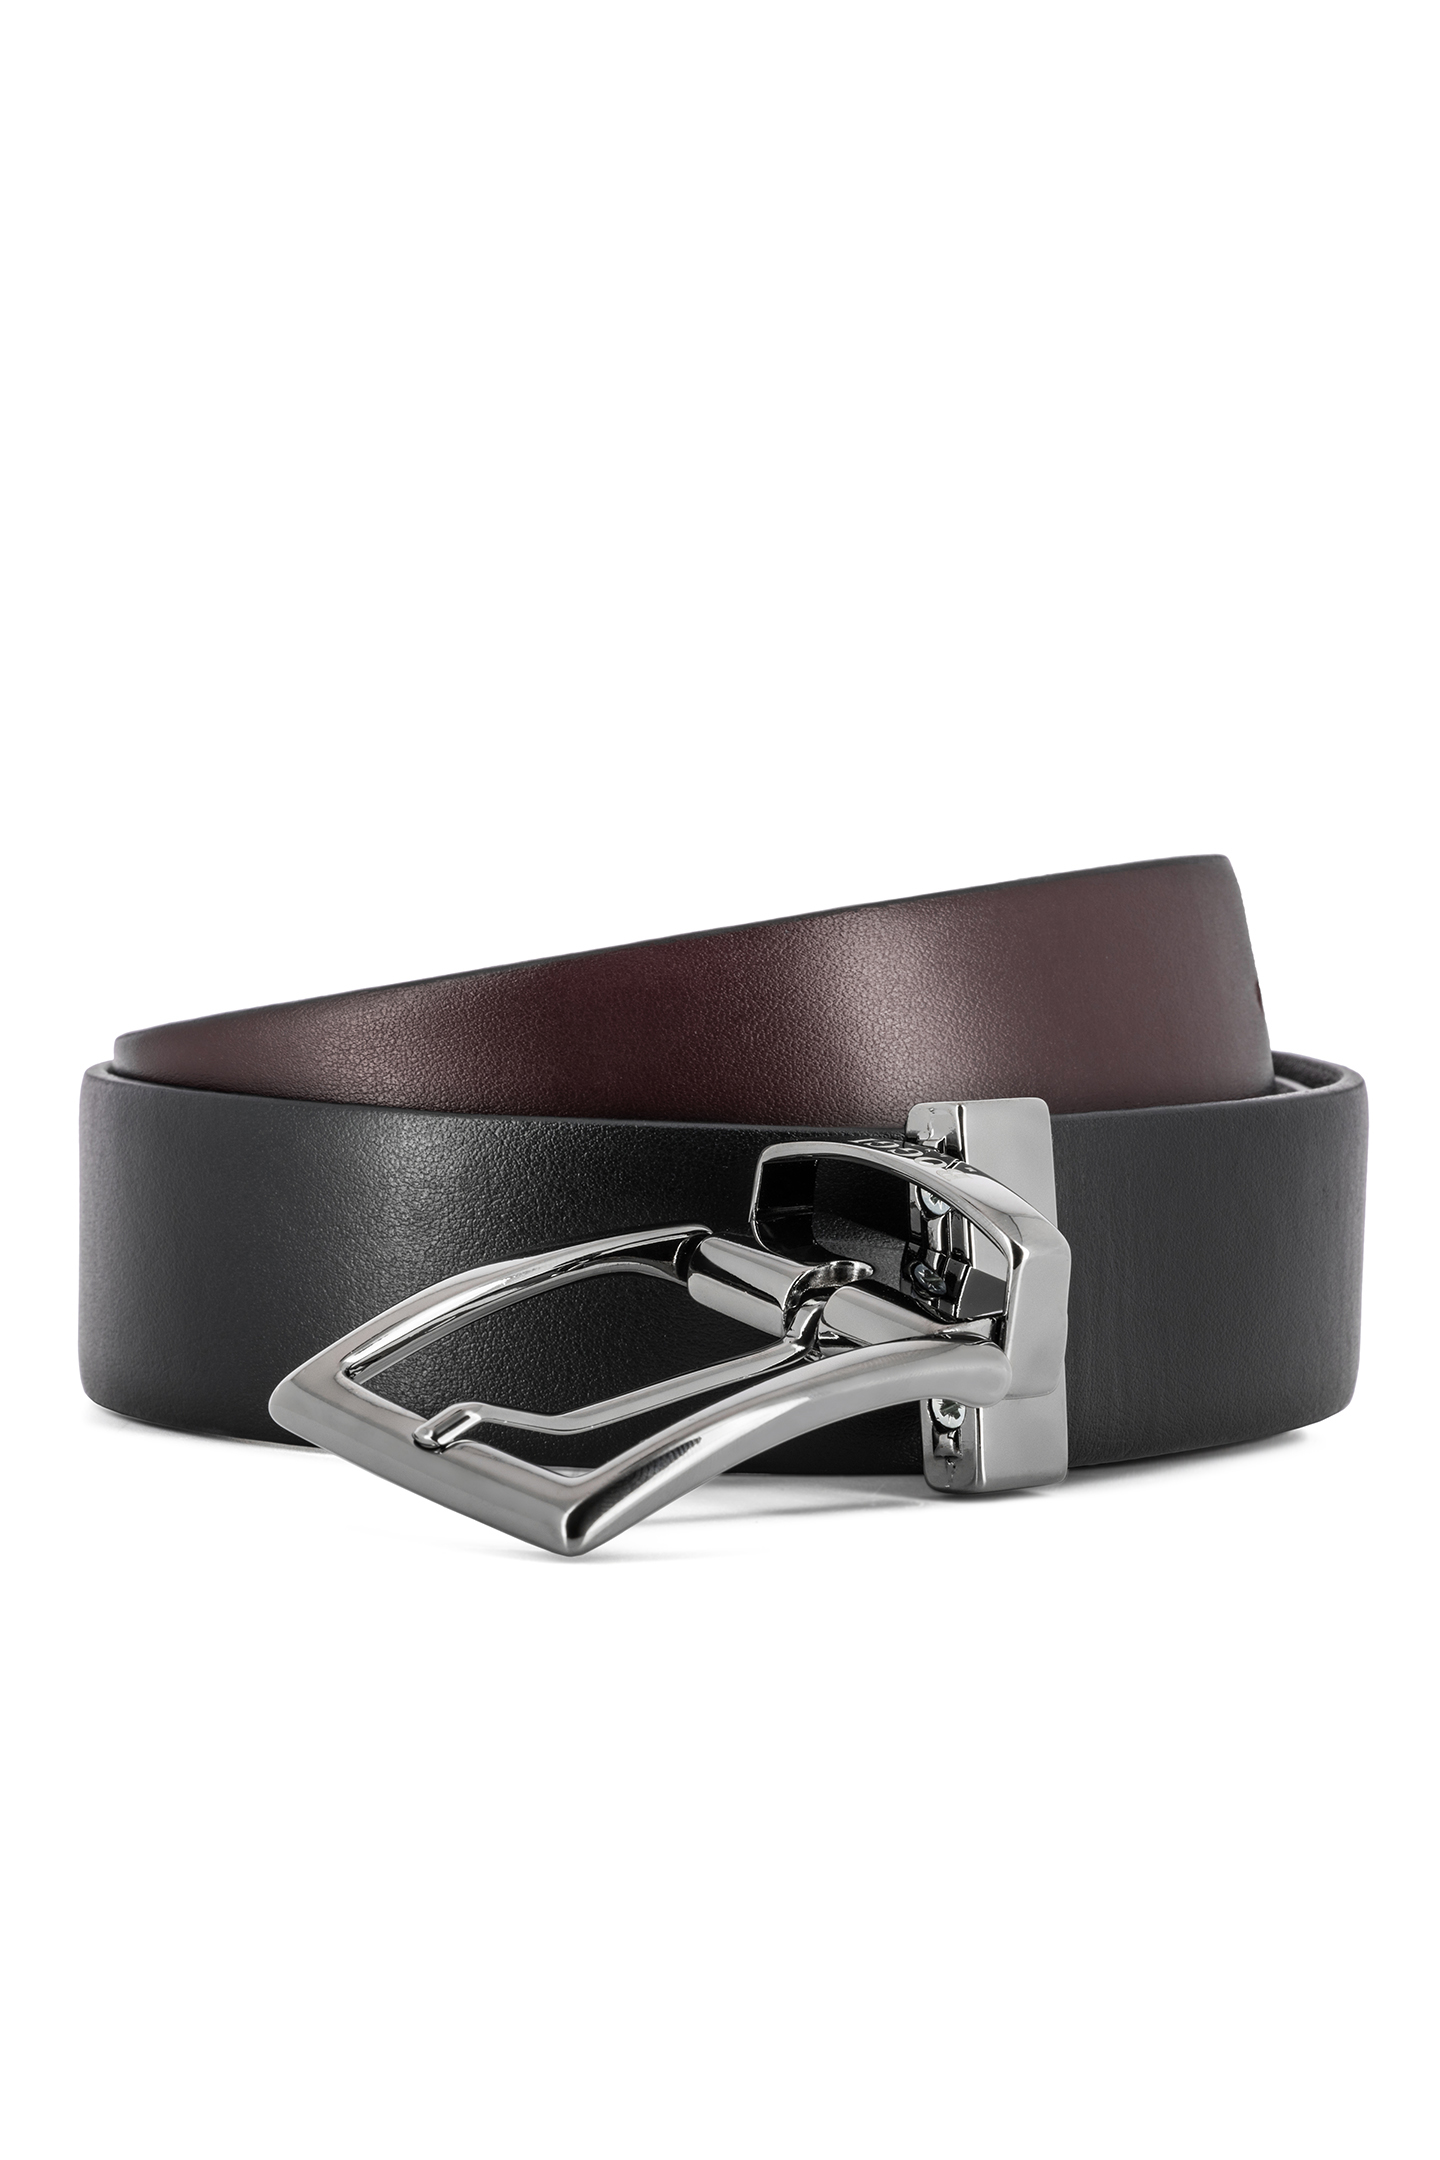 54f7a77f84ae REVERSIBLE SMOOTH LEATHER BELT - MADE IN ITALY